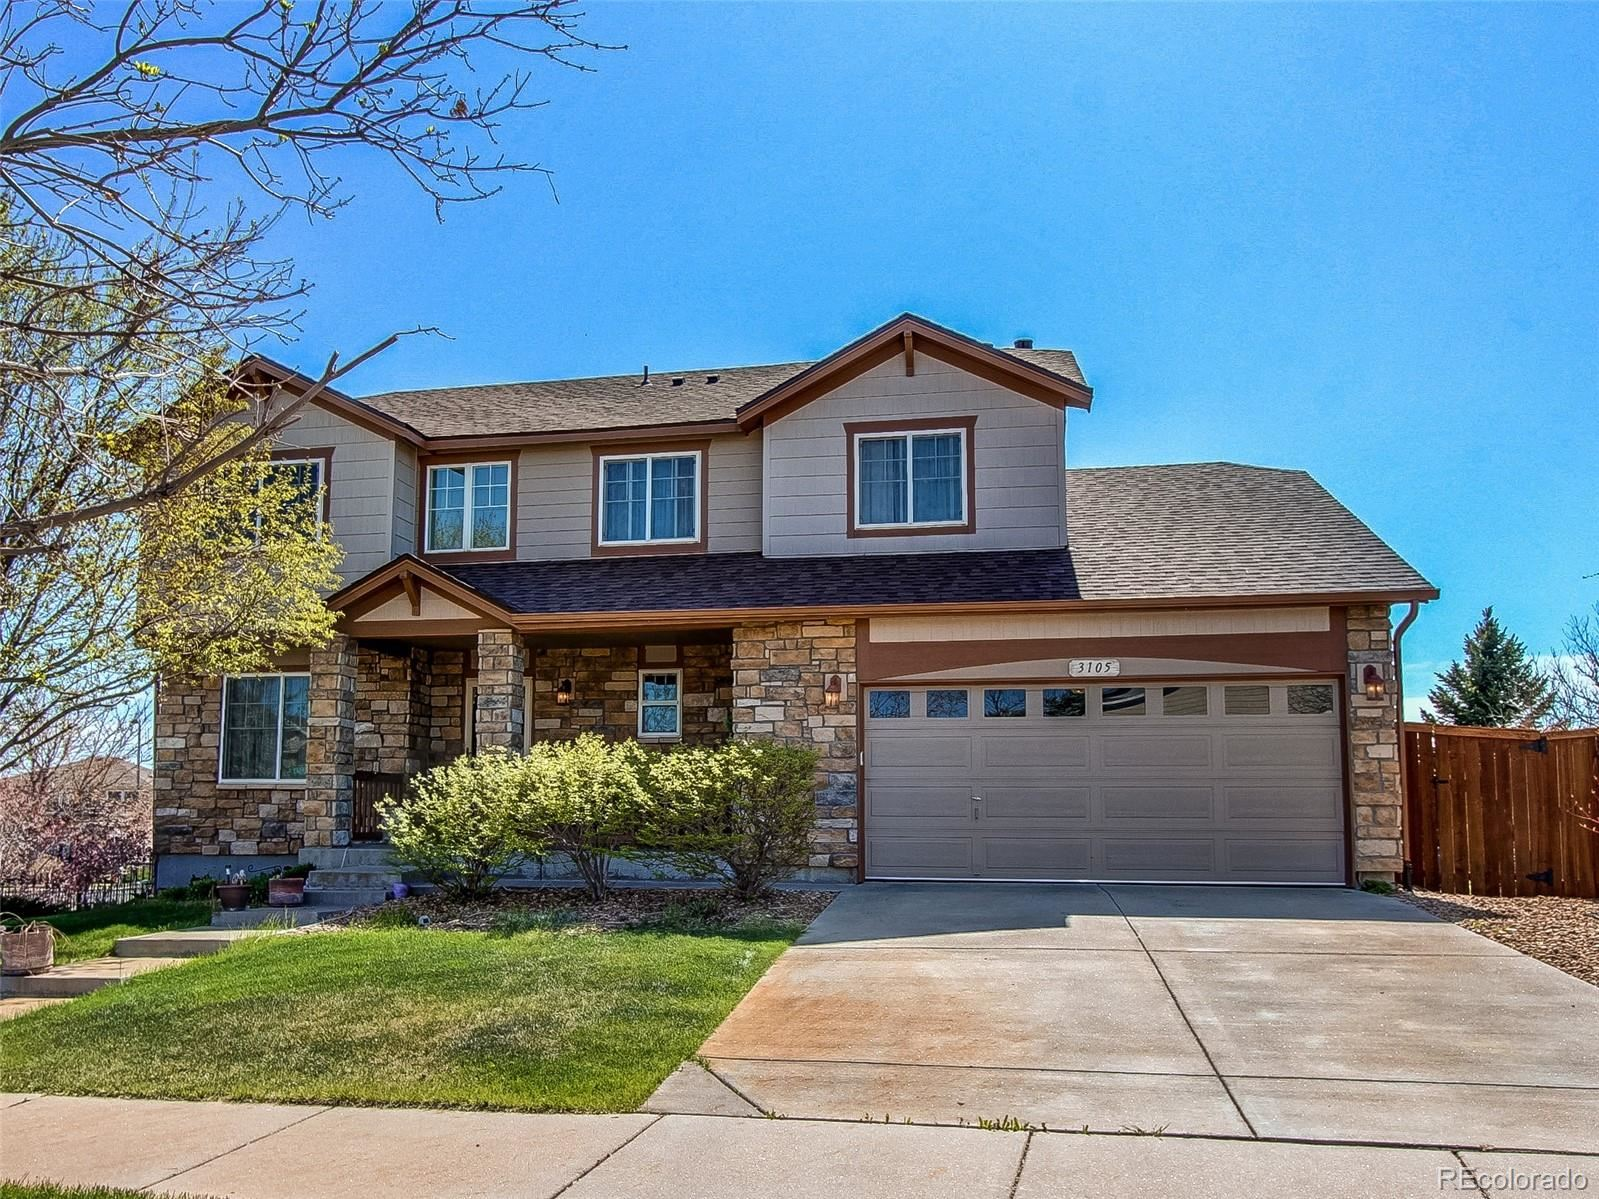 3105 S Killarney Way, Aurora, CO 80013 - #: 2010028